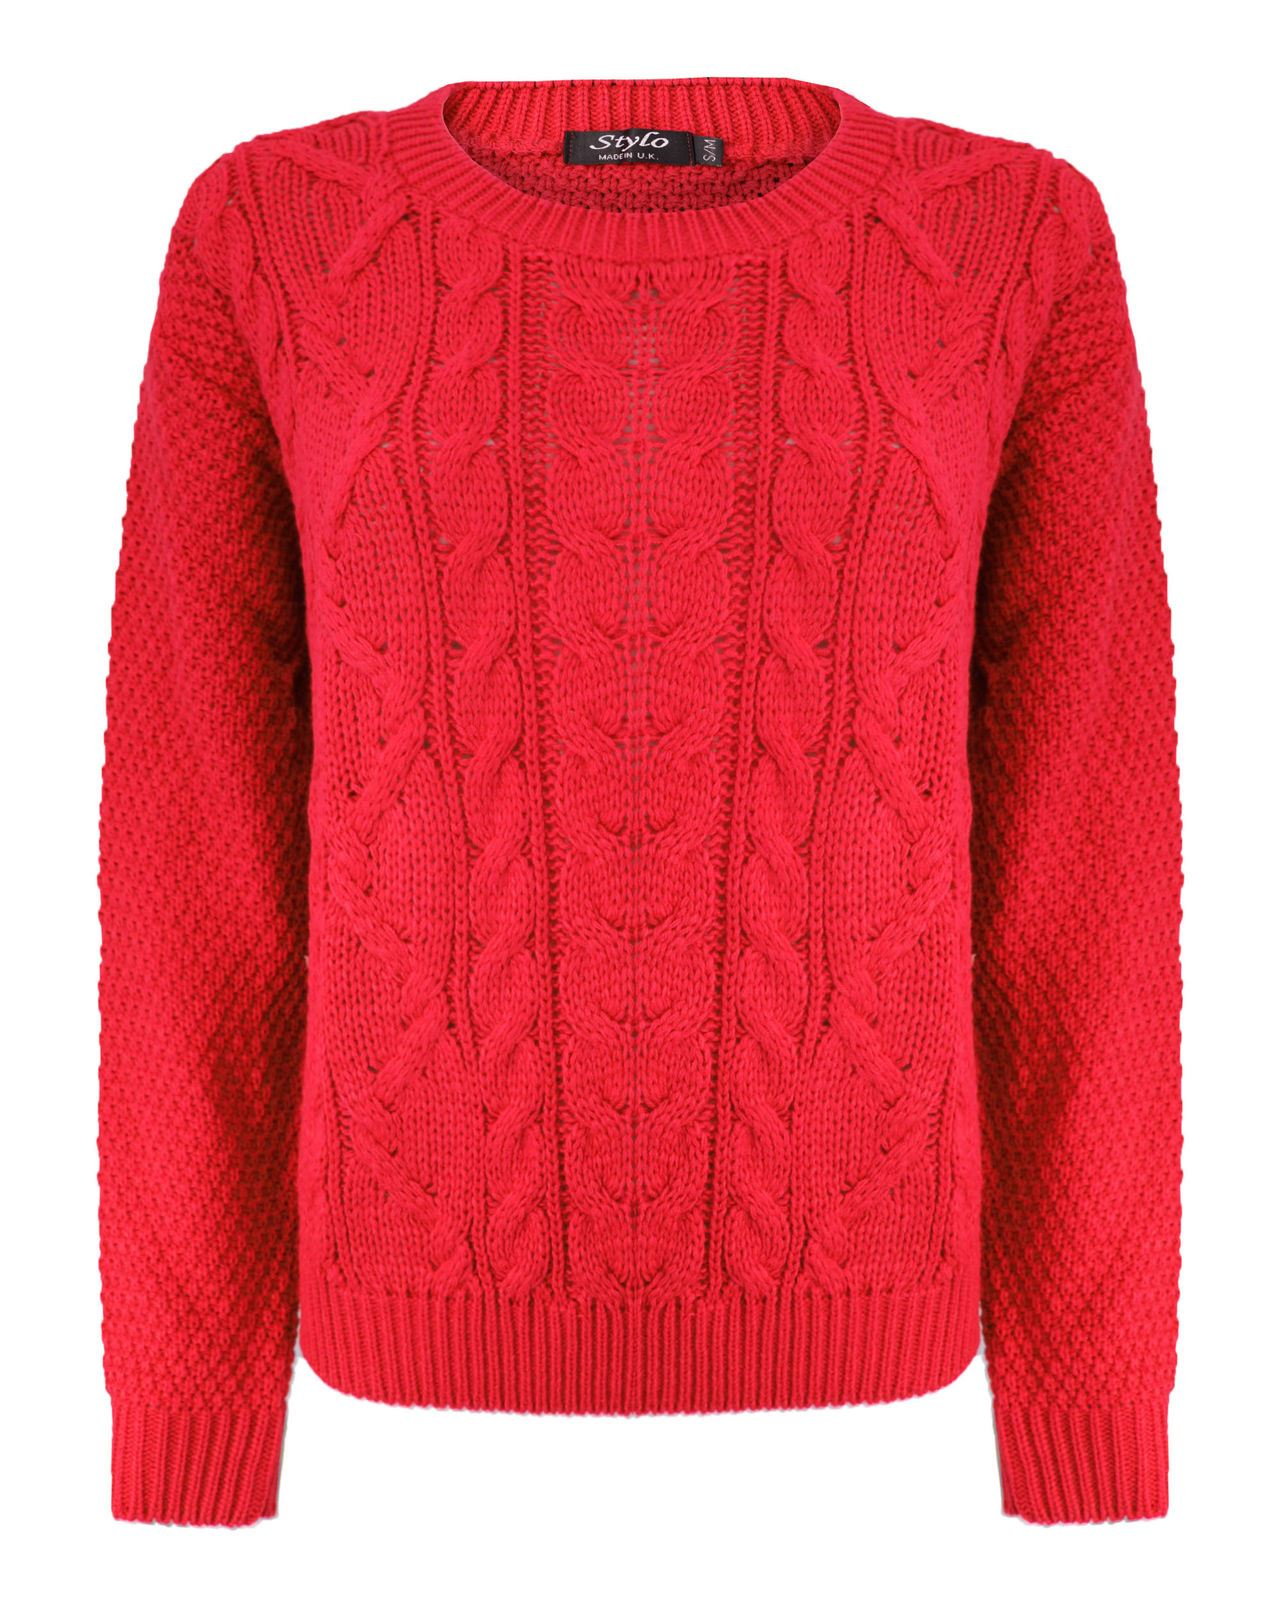 Ladies Women Knitted Crew Neck Long Sleeve Cable Knit Jumper Chunky Sweater T...